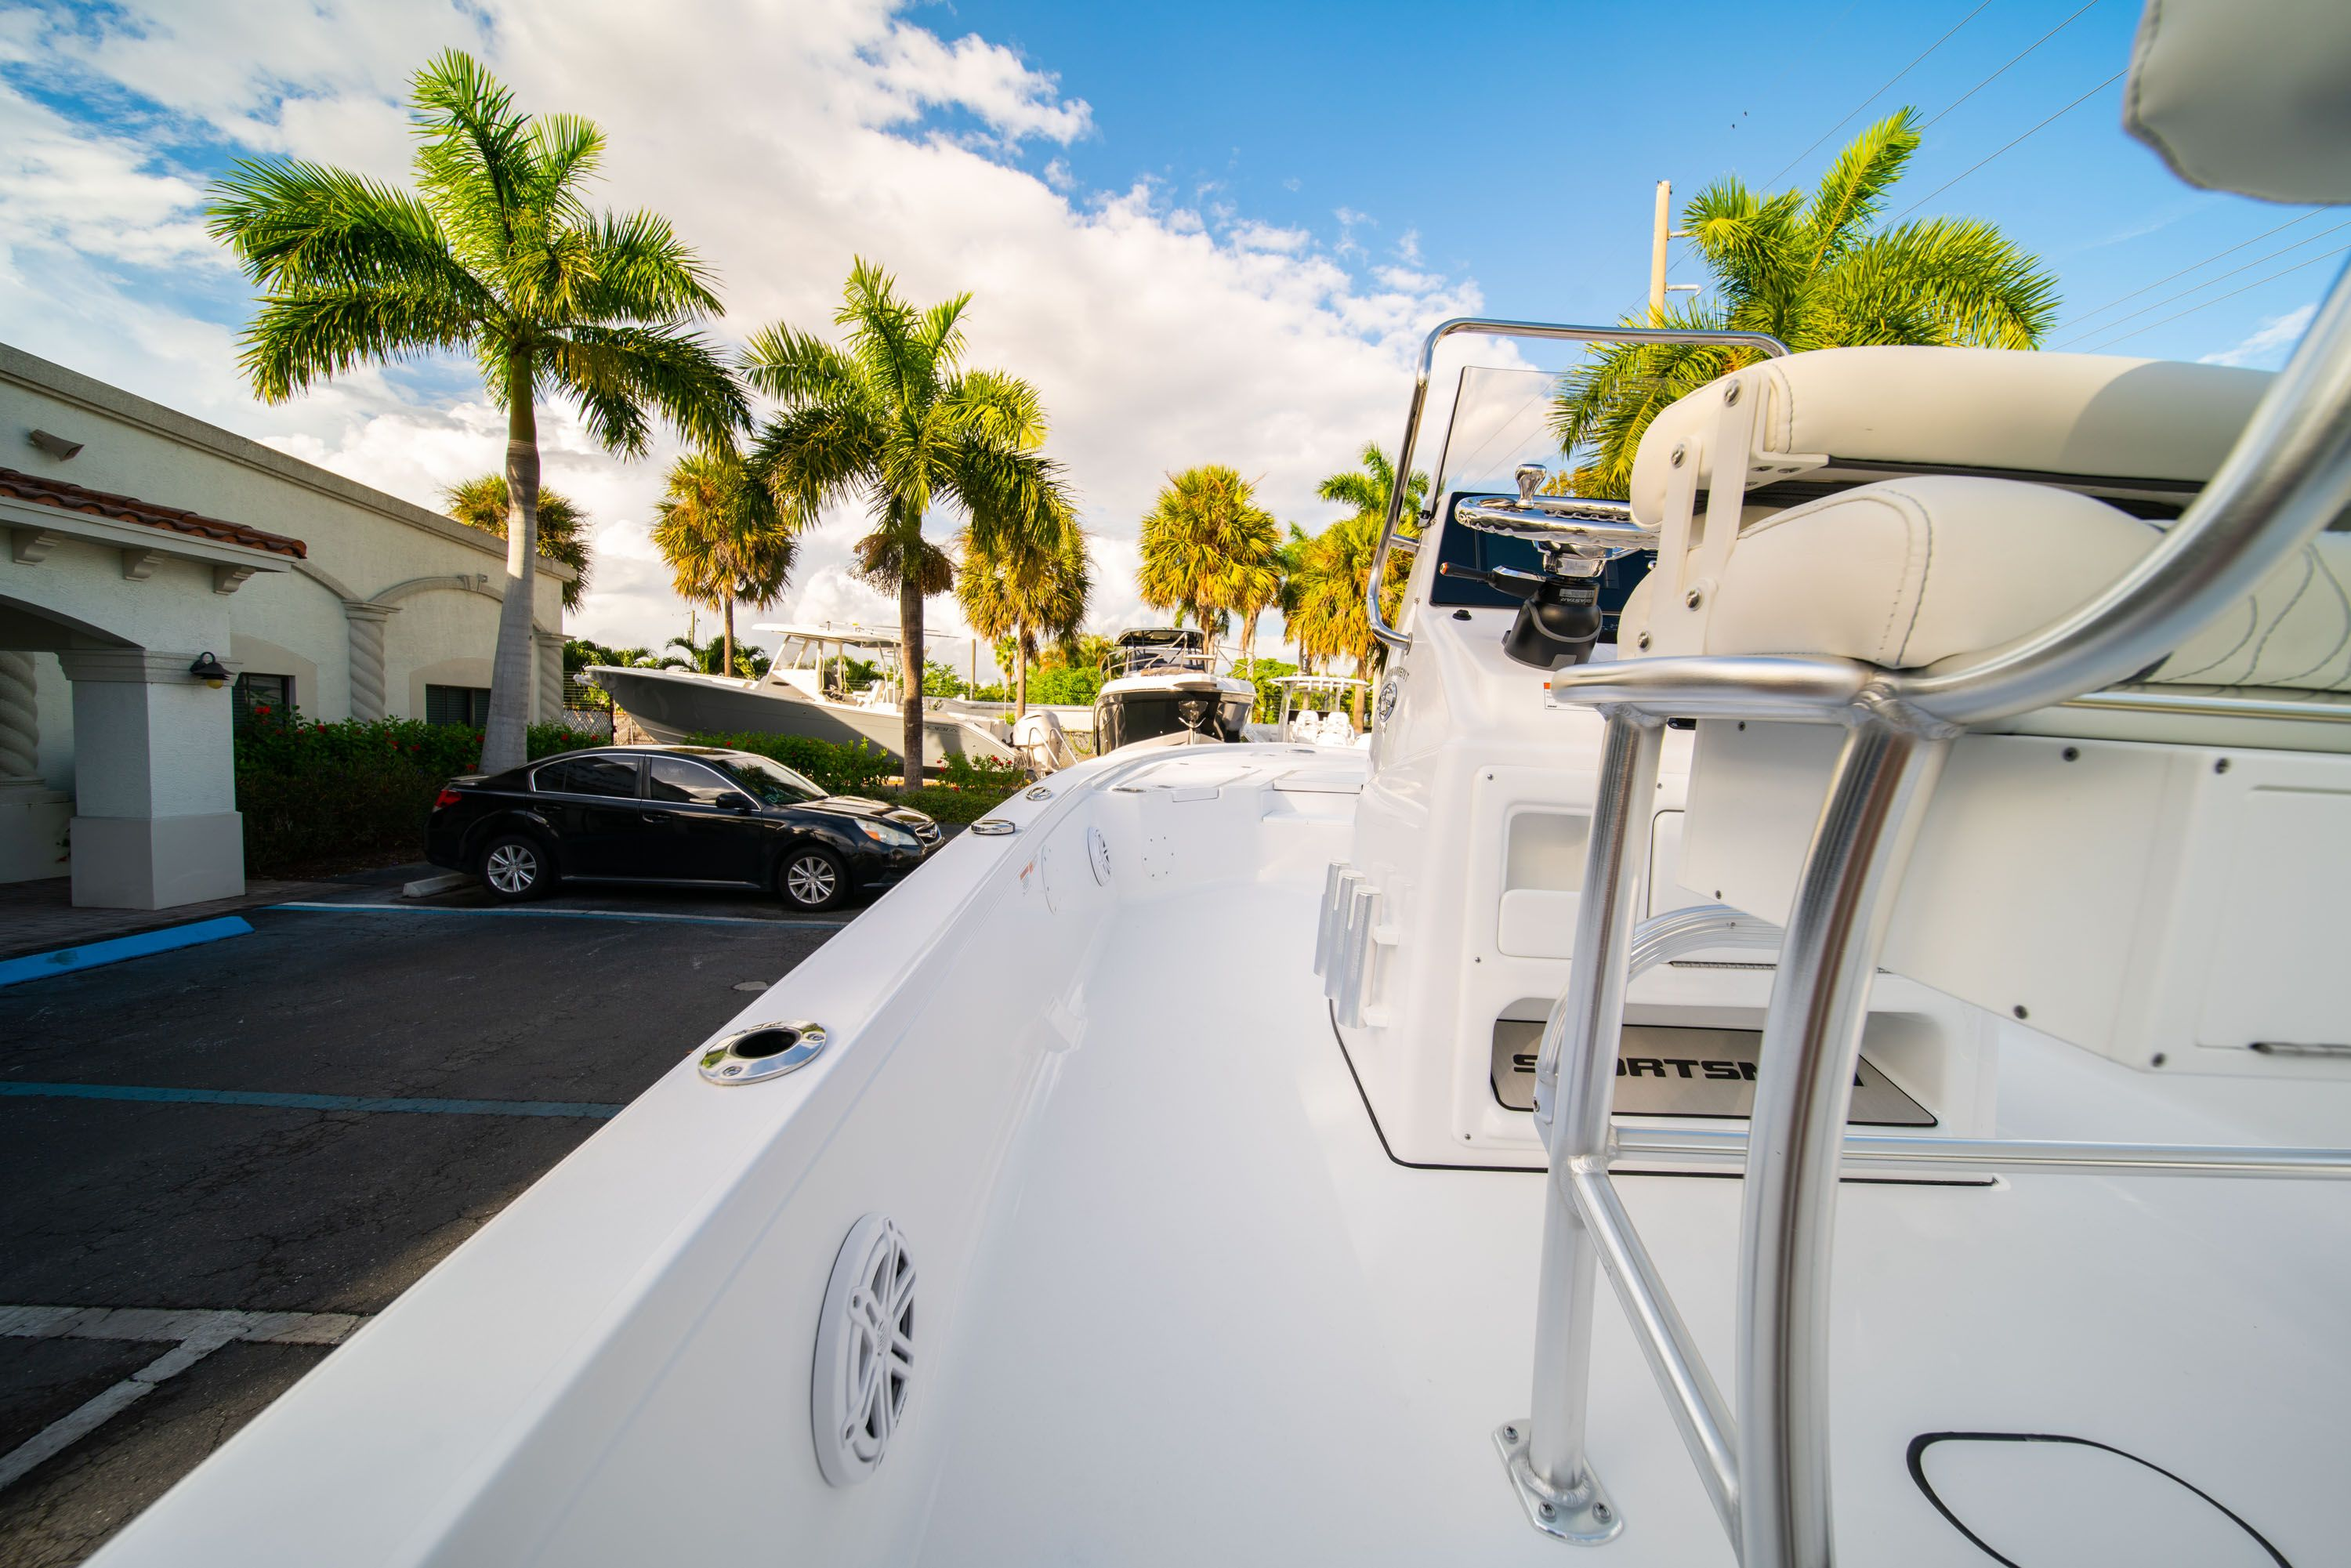 Thumbnail 16 for New 2020 Sportsman Tournament 214 Bay Boat boat for sale in West Palm Beach, FL